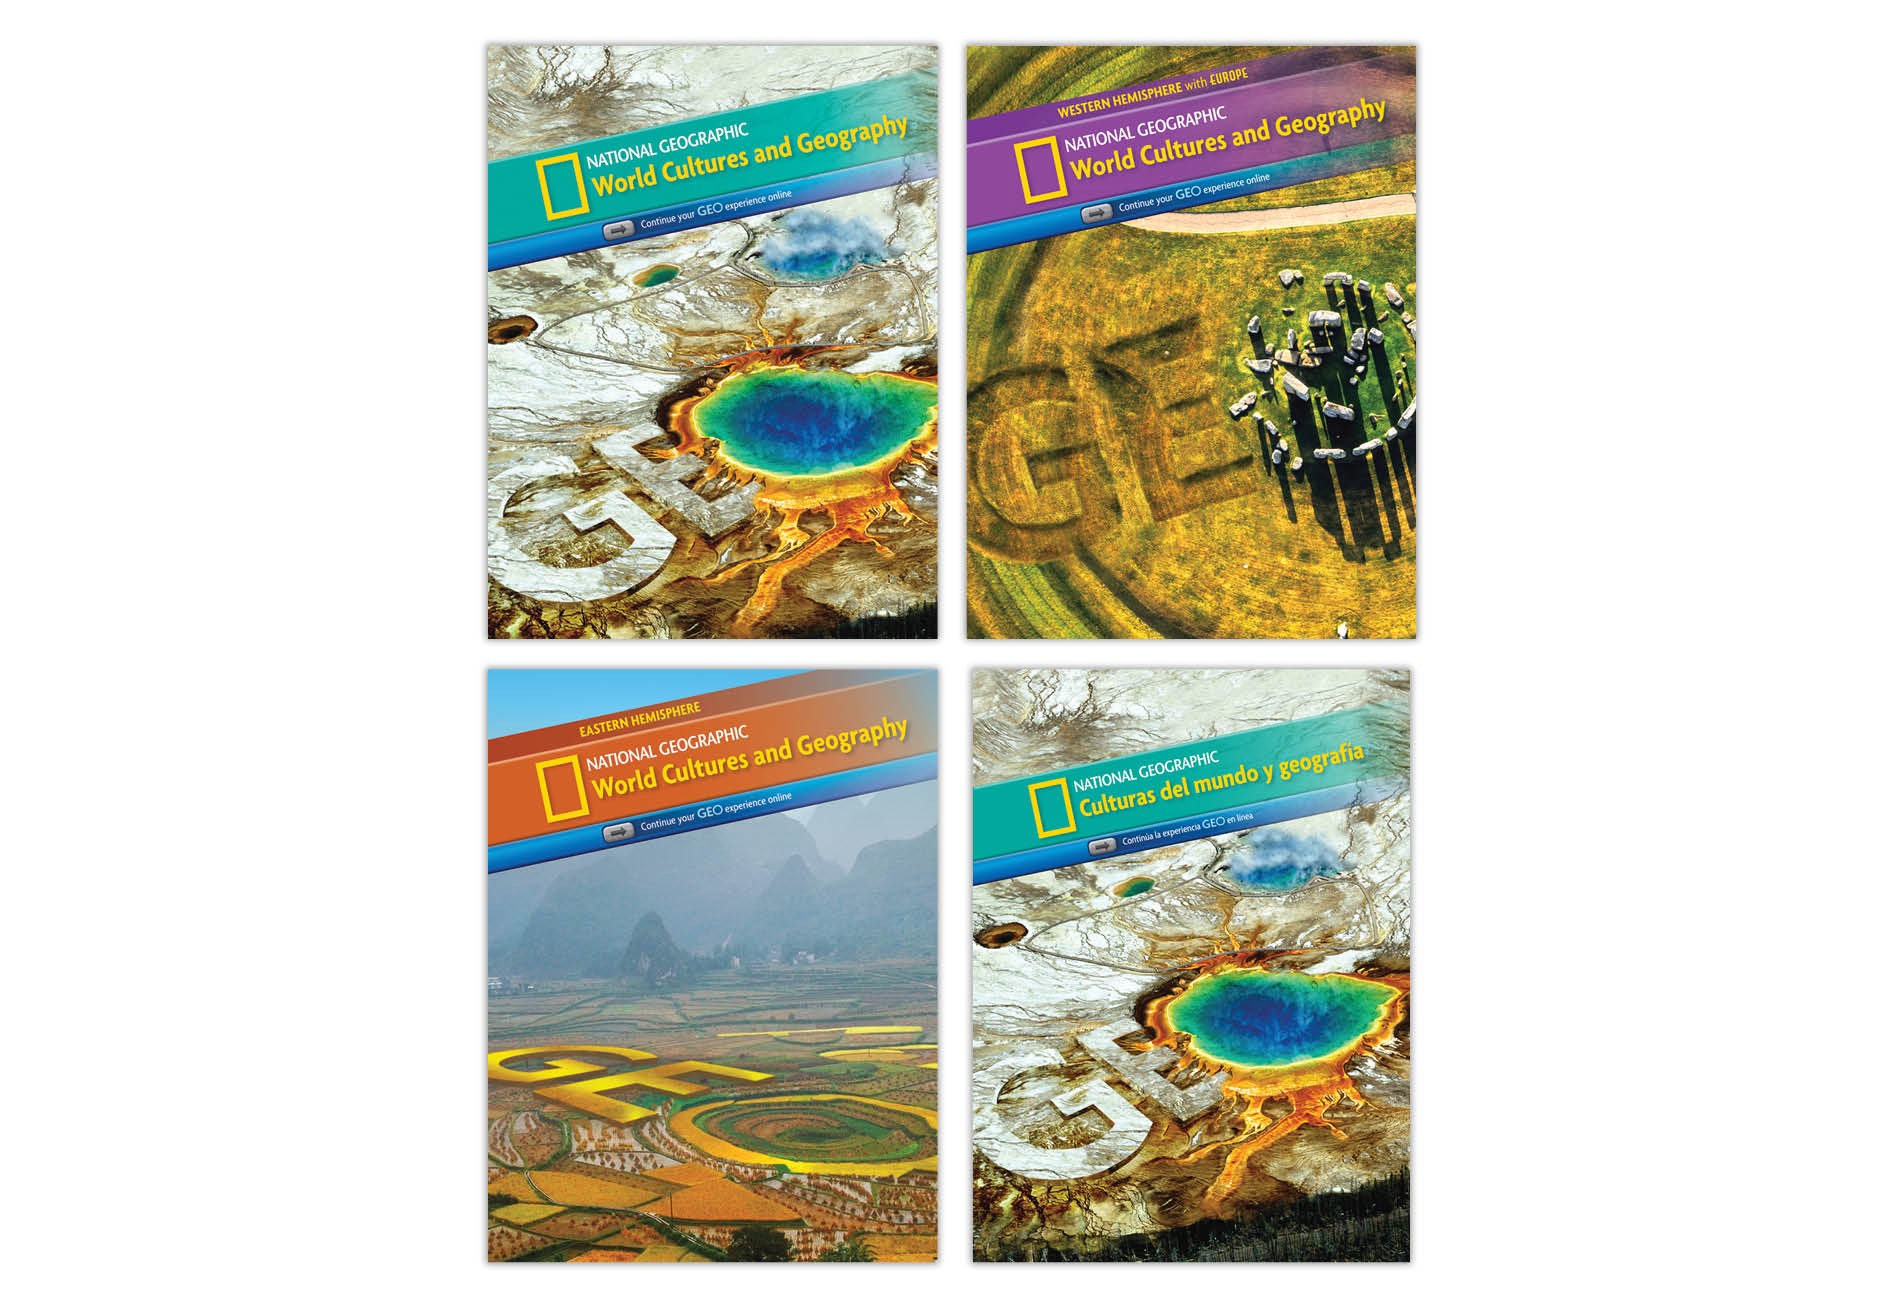 World cultures and geography copyright update ngl school catalog no image gumiabroncs Gallery